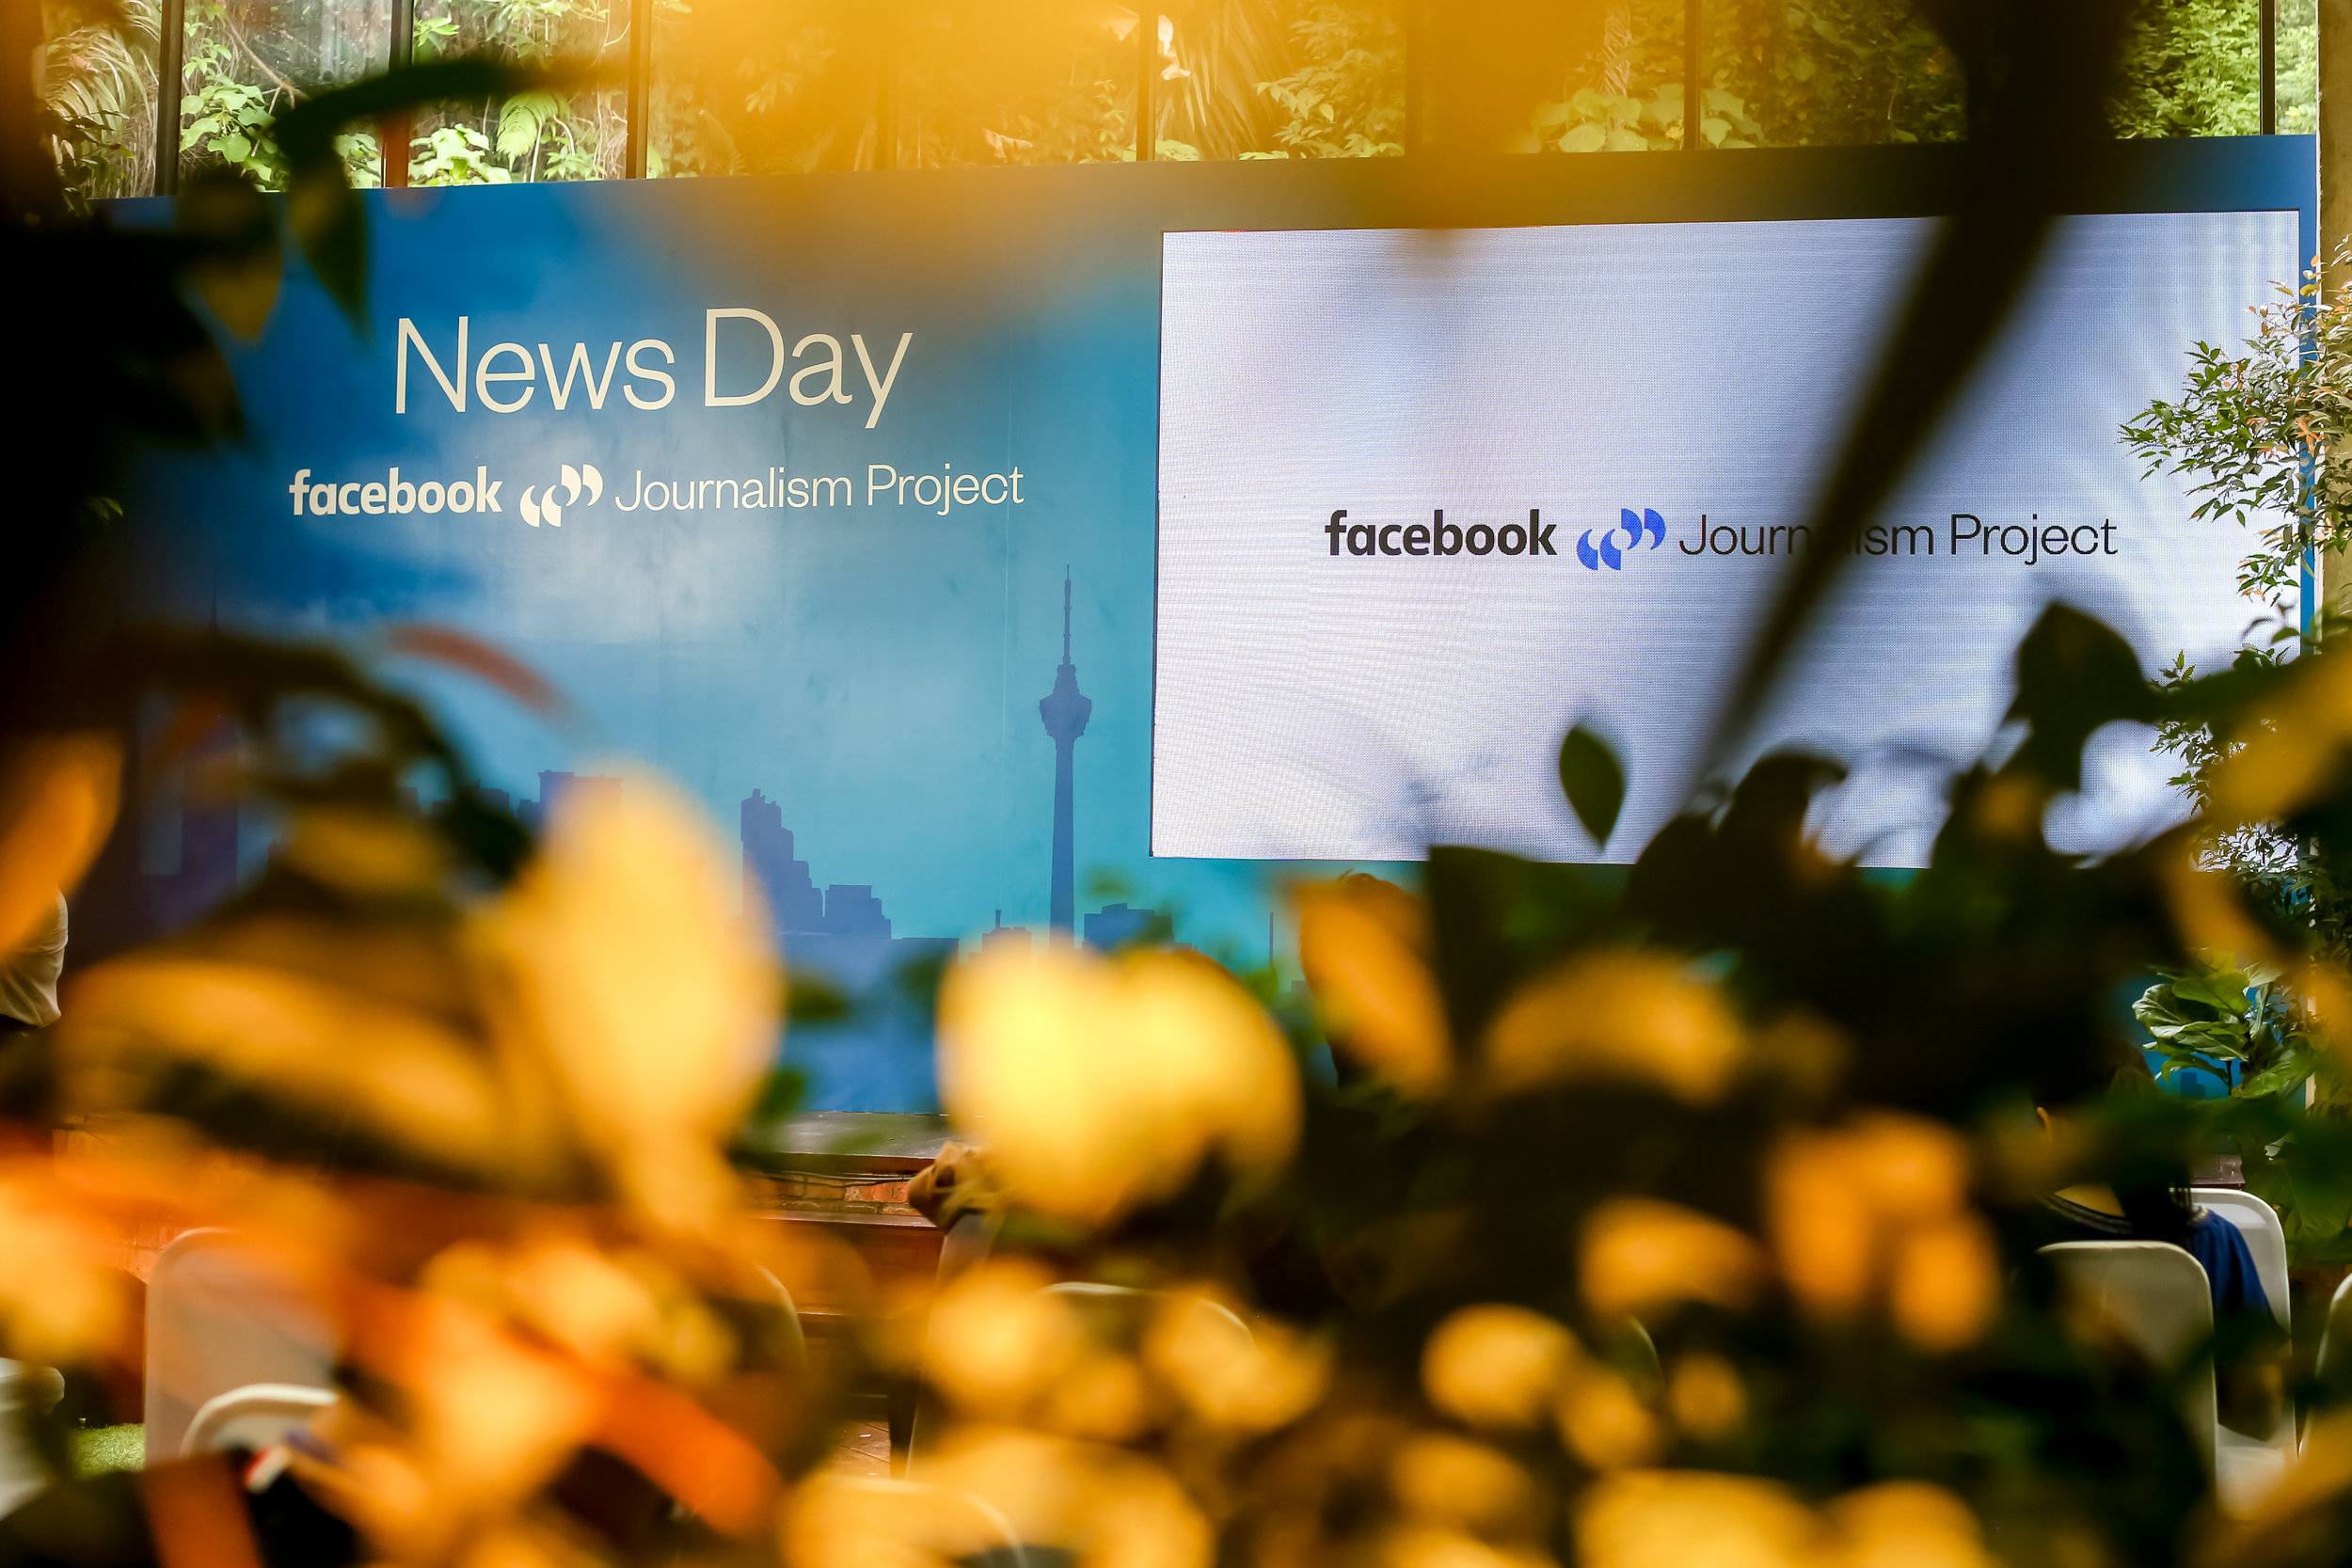 Facebook presented their  Journalism Project introducing attendees to tools and platforms readily available to increase news literacy and authenticity.